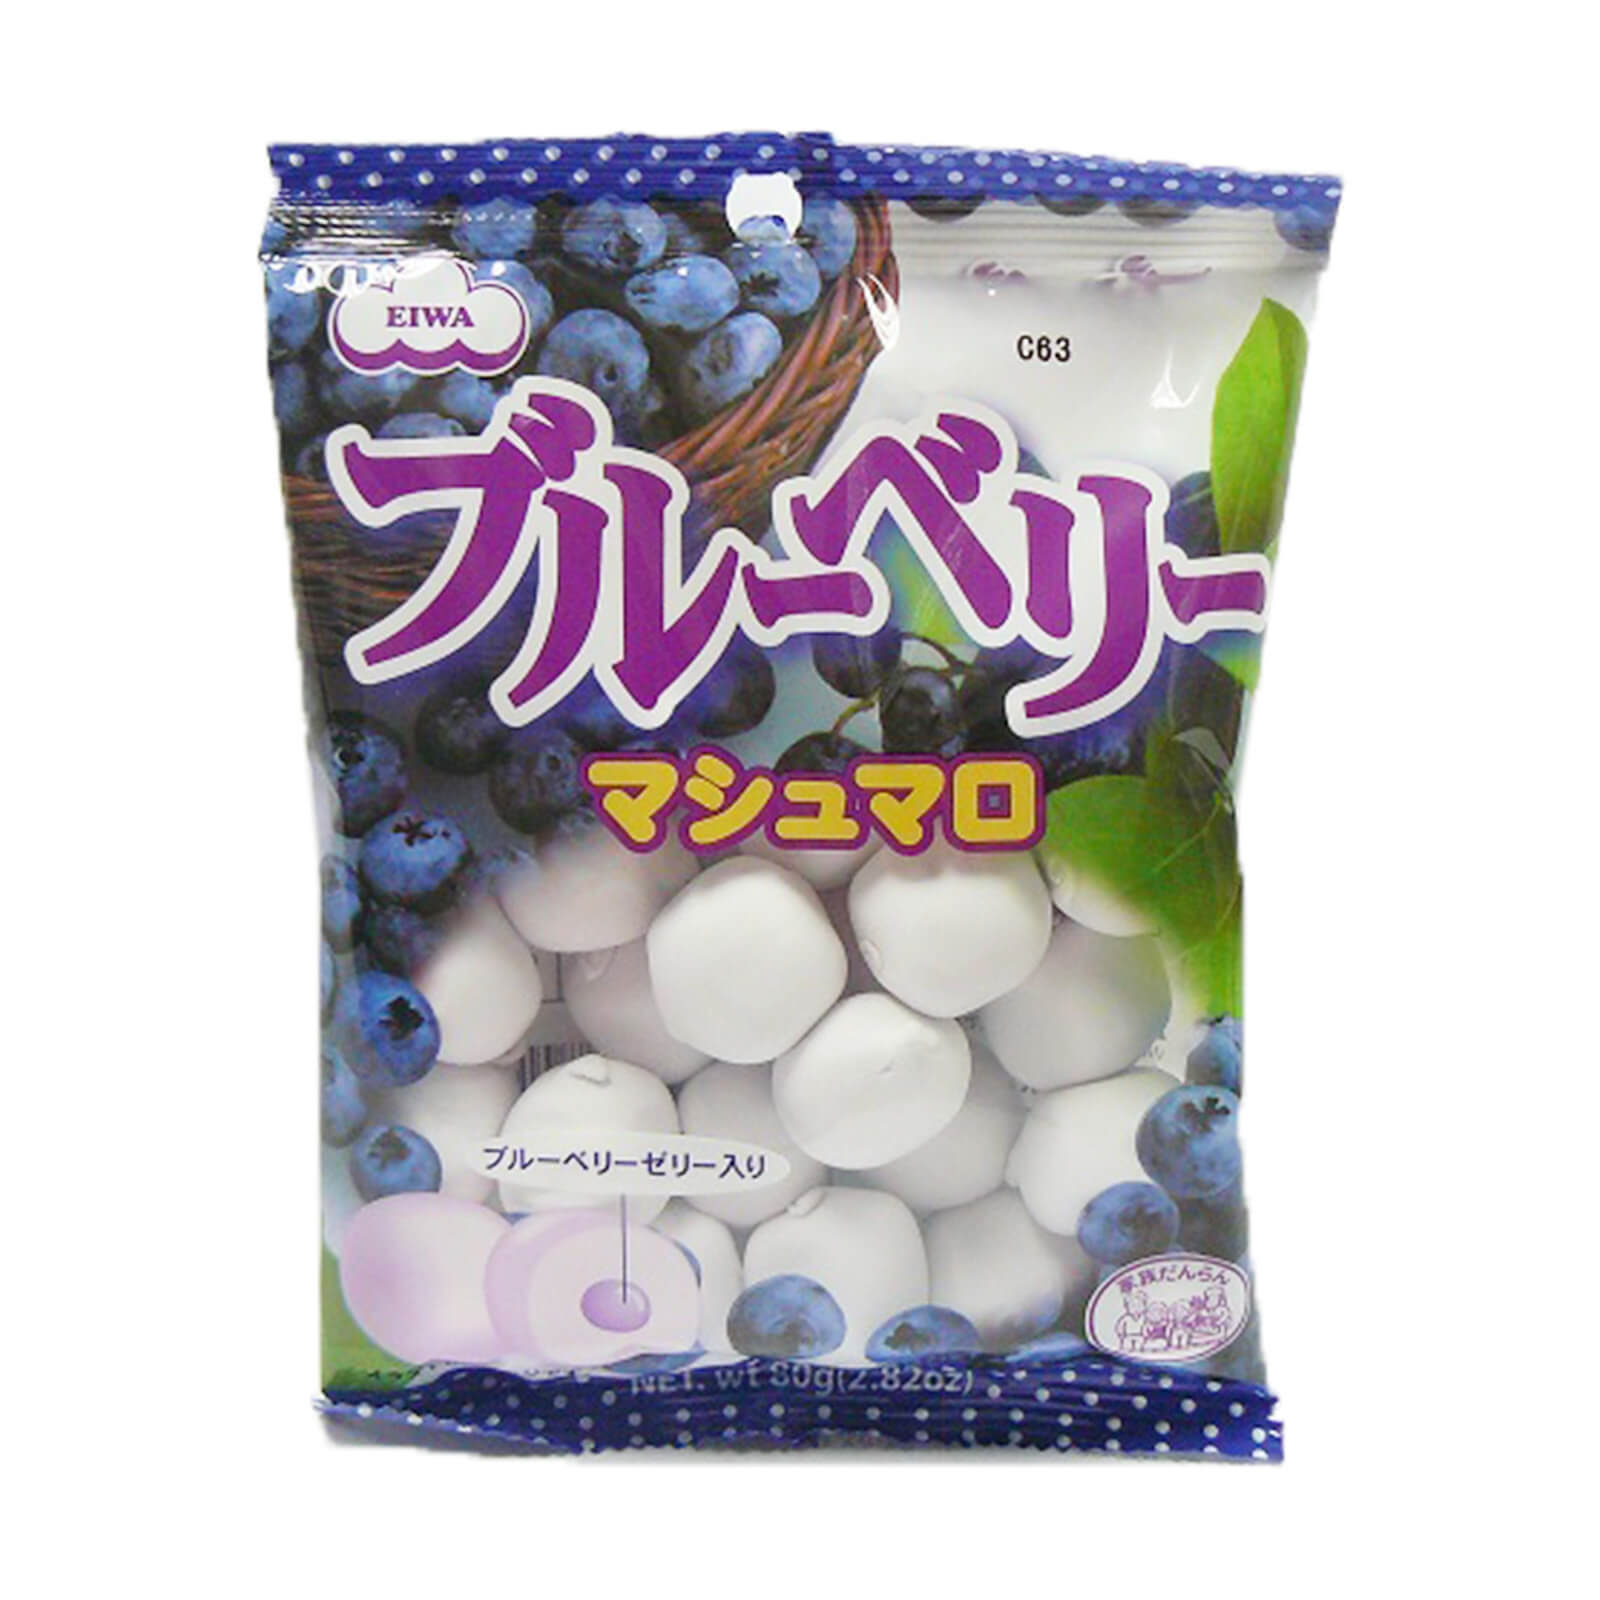 Eiwa Blueberry Marshmallow